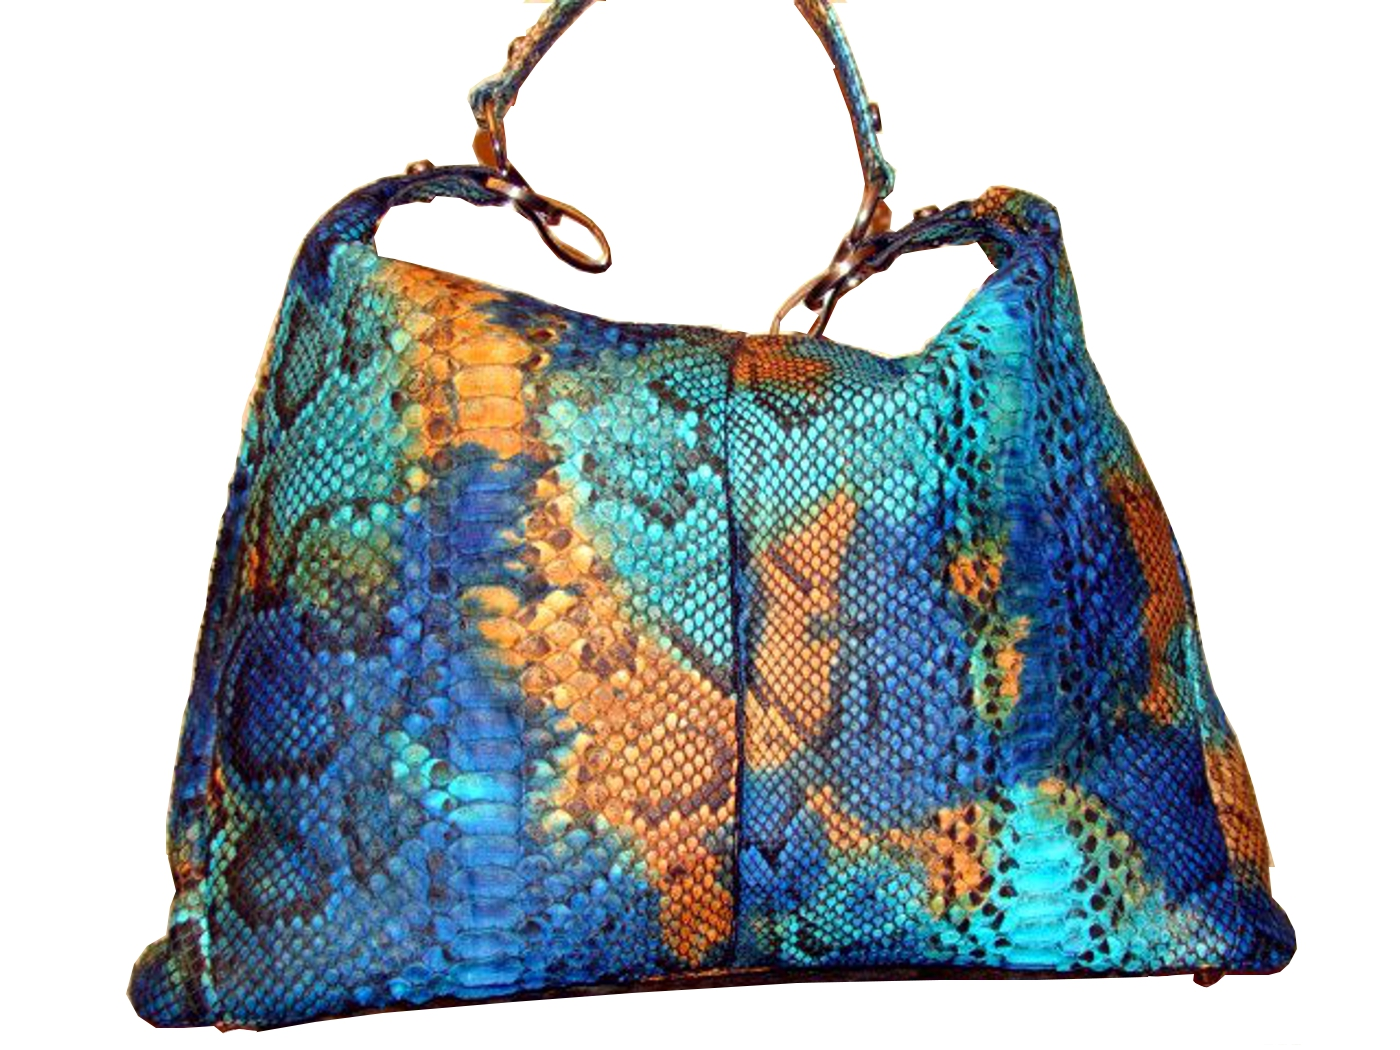 Braschi Handbag Paradiso Color in Genuine Python Leather!